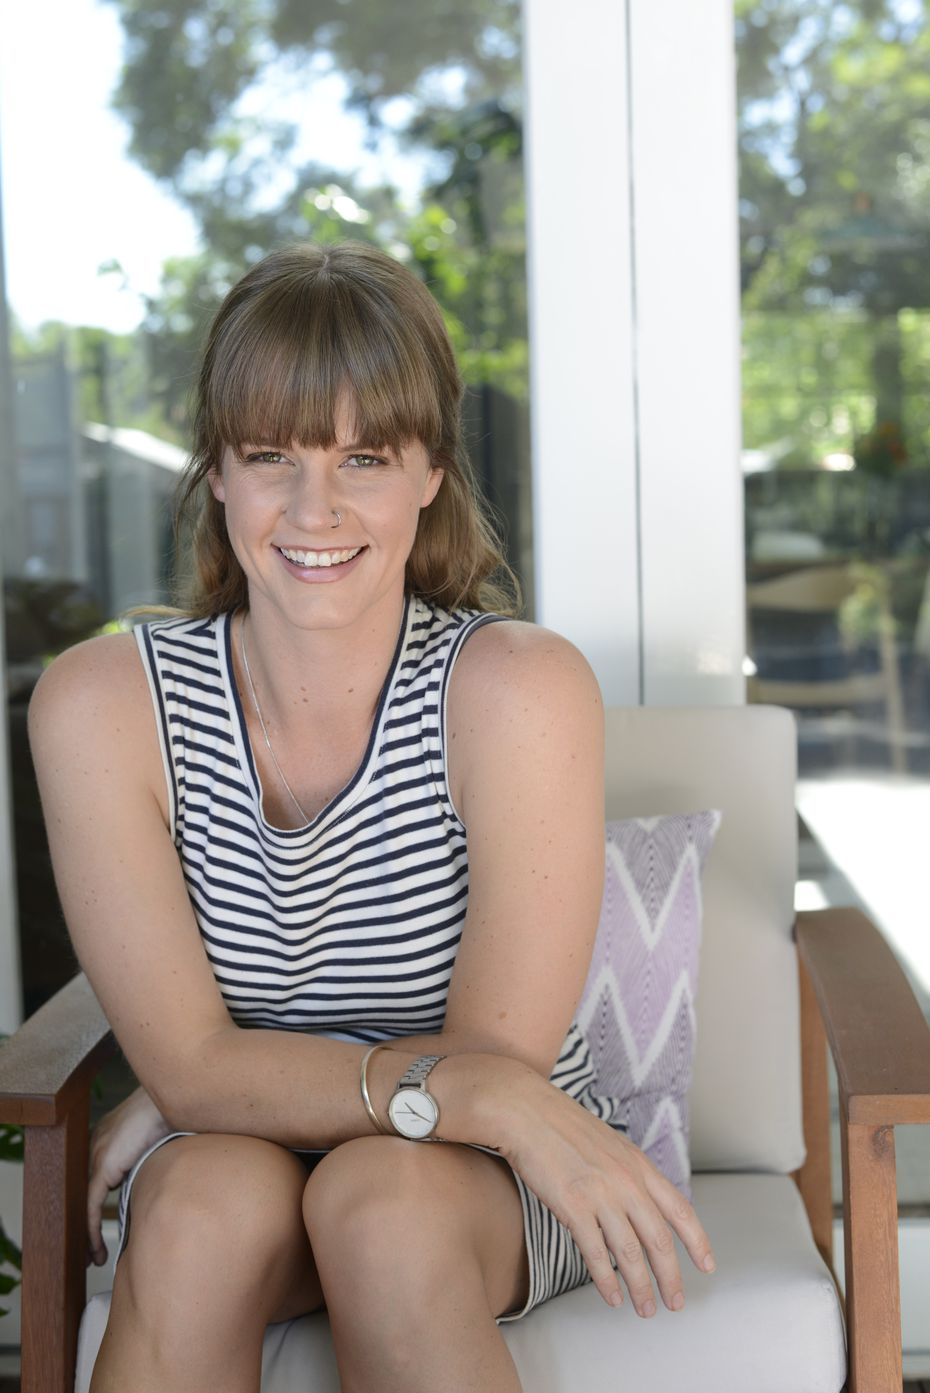 Brooke McAlary wrote Slow: Simple Living for a Frantic World. She'll be in Dallas on Aug. 2 to talk about it.